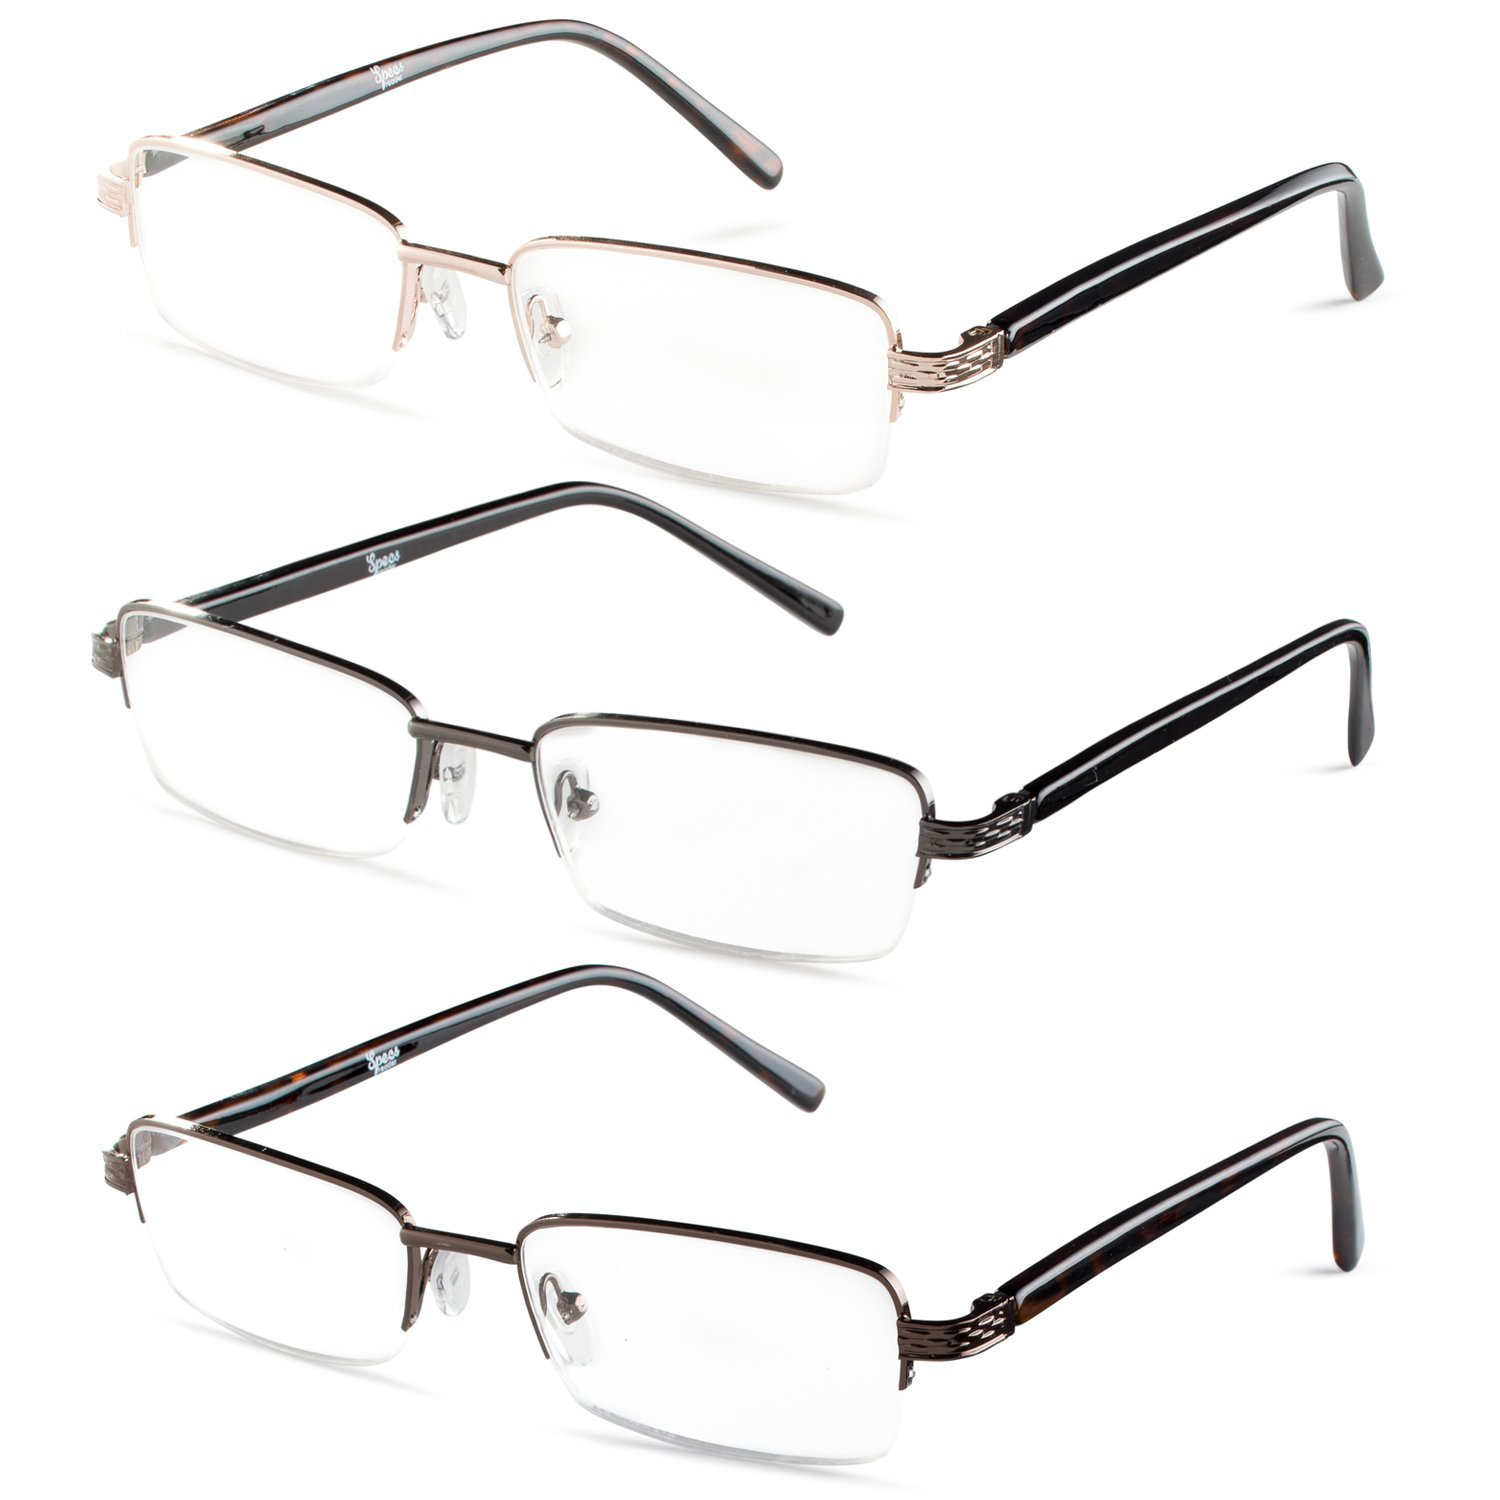 5fd3087ca0 Amazon.com  Half Rimmed Rectangular Reading Glasses For Mens - Free  Microfiber Cleaning Pouch +1.00 Value 3 Pack  Clothing